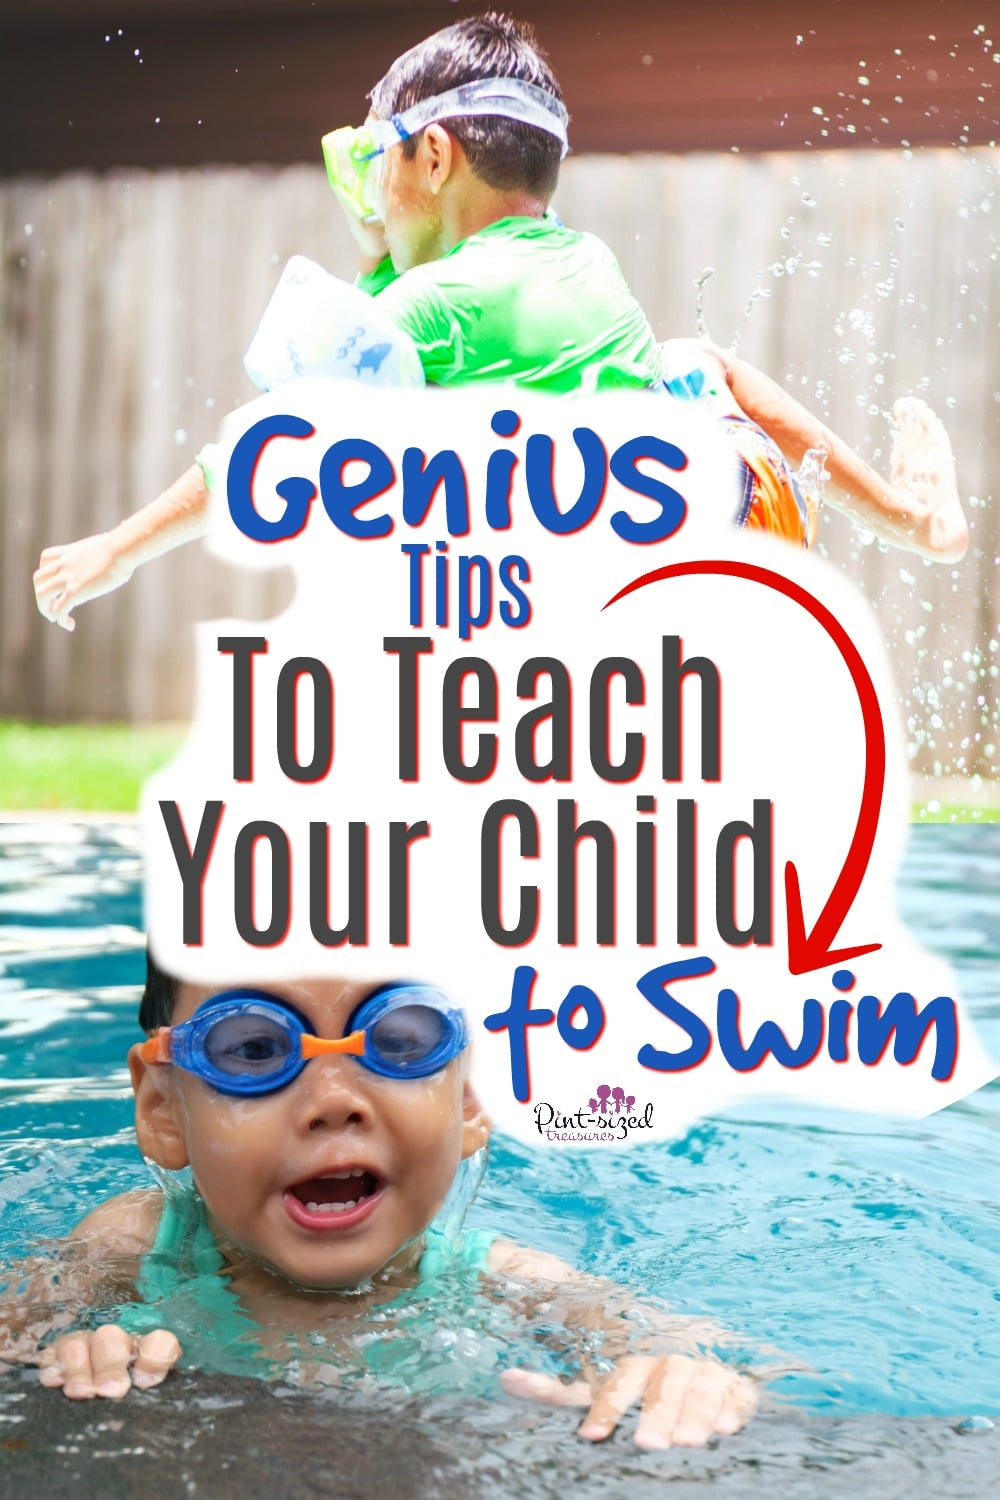 Genius tips to teach kids to swim